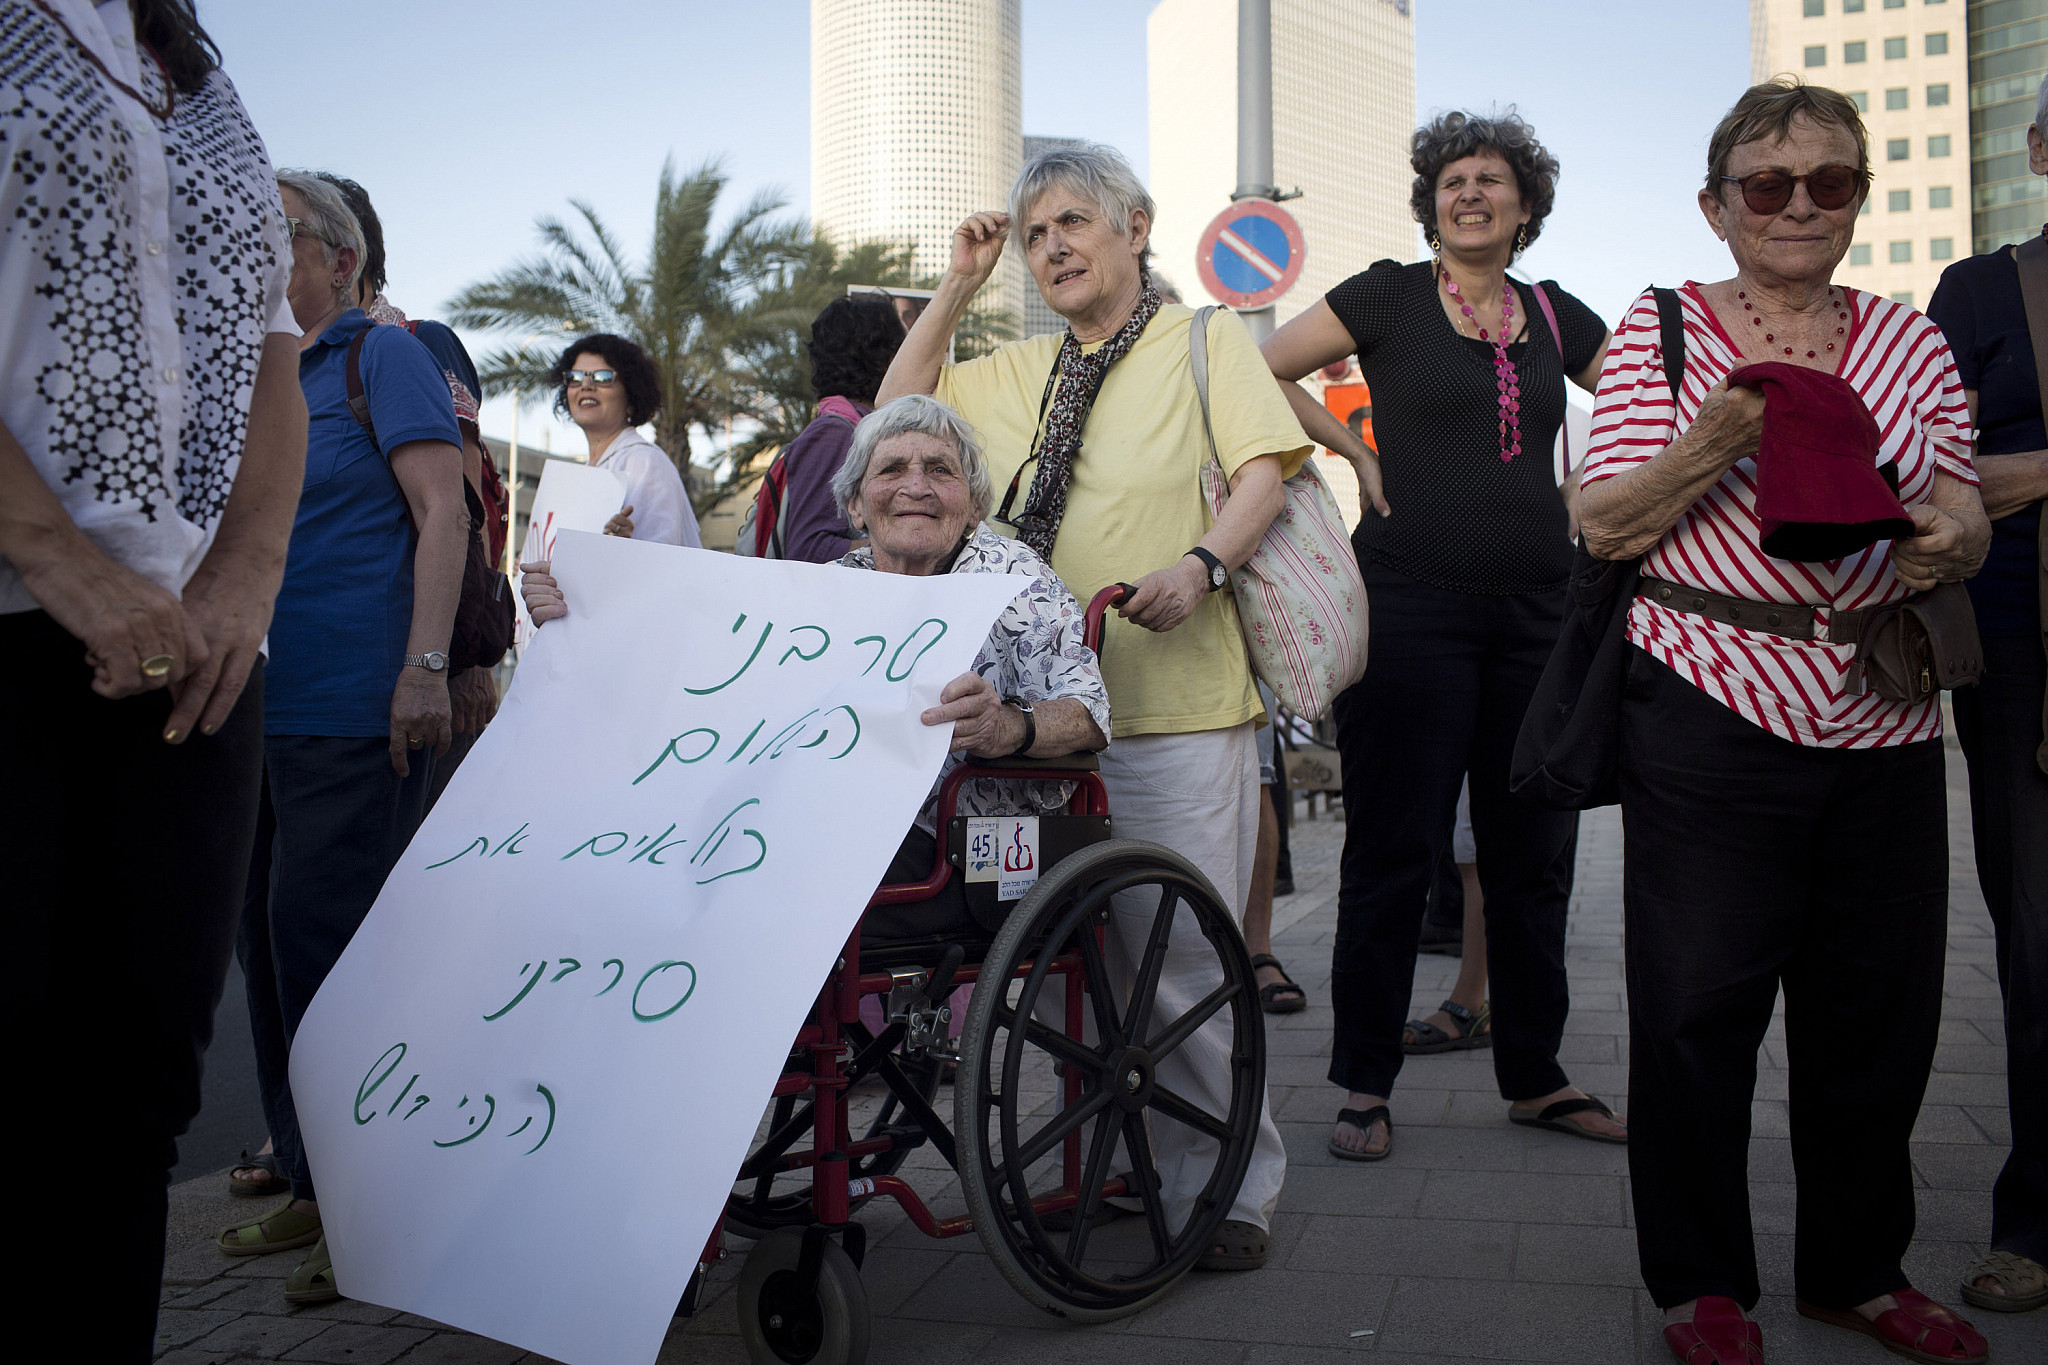 Image: Hava Geller at a solidarity protest with draft refuser Natan Blank, Tel Aviv, May 21, 2013. (Oren Ziv/Activestills.org)